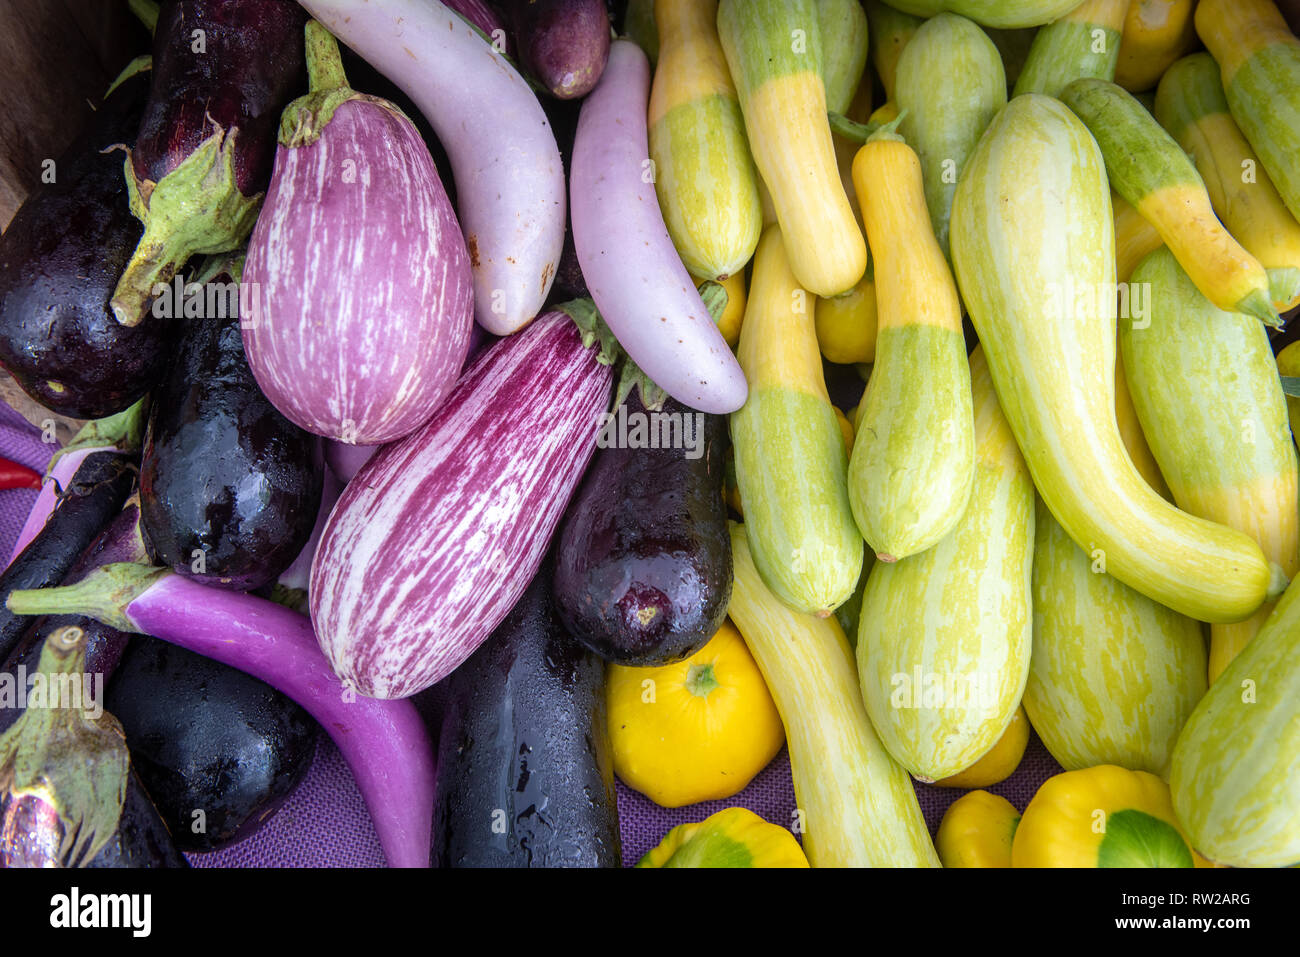 High angle view of eggplants (Solanum melongena) and a variety of gourds on display for sale at farmers' market, Rehoboth Beach, Delaware Stock Photo